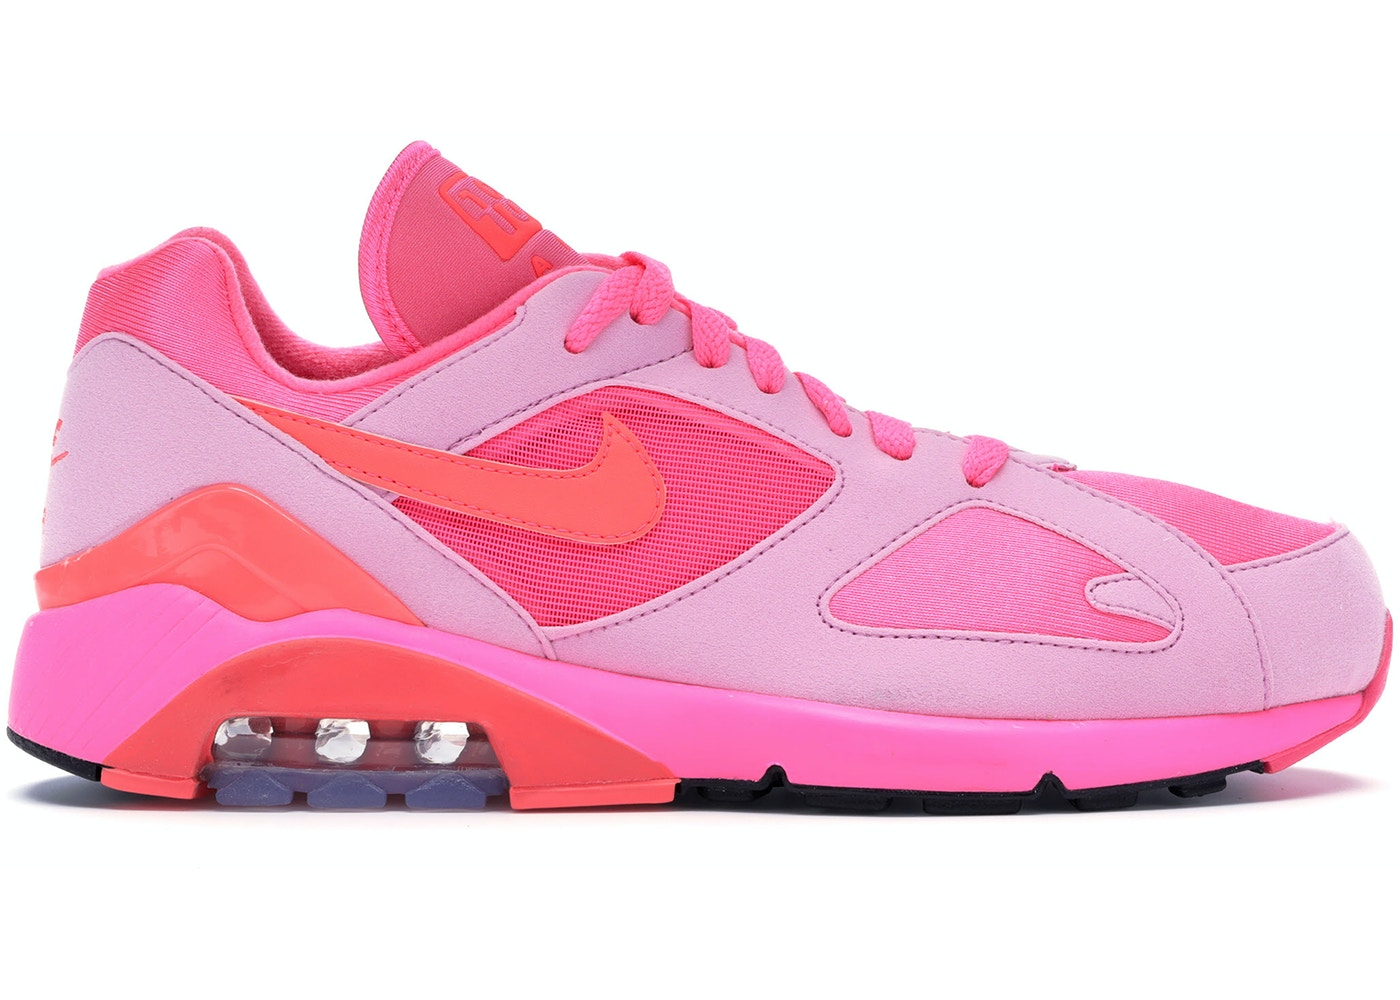 abaf879d86d1 Nike Air Max Other Shoes - Average Sale Price